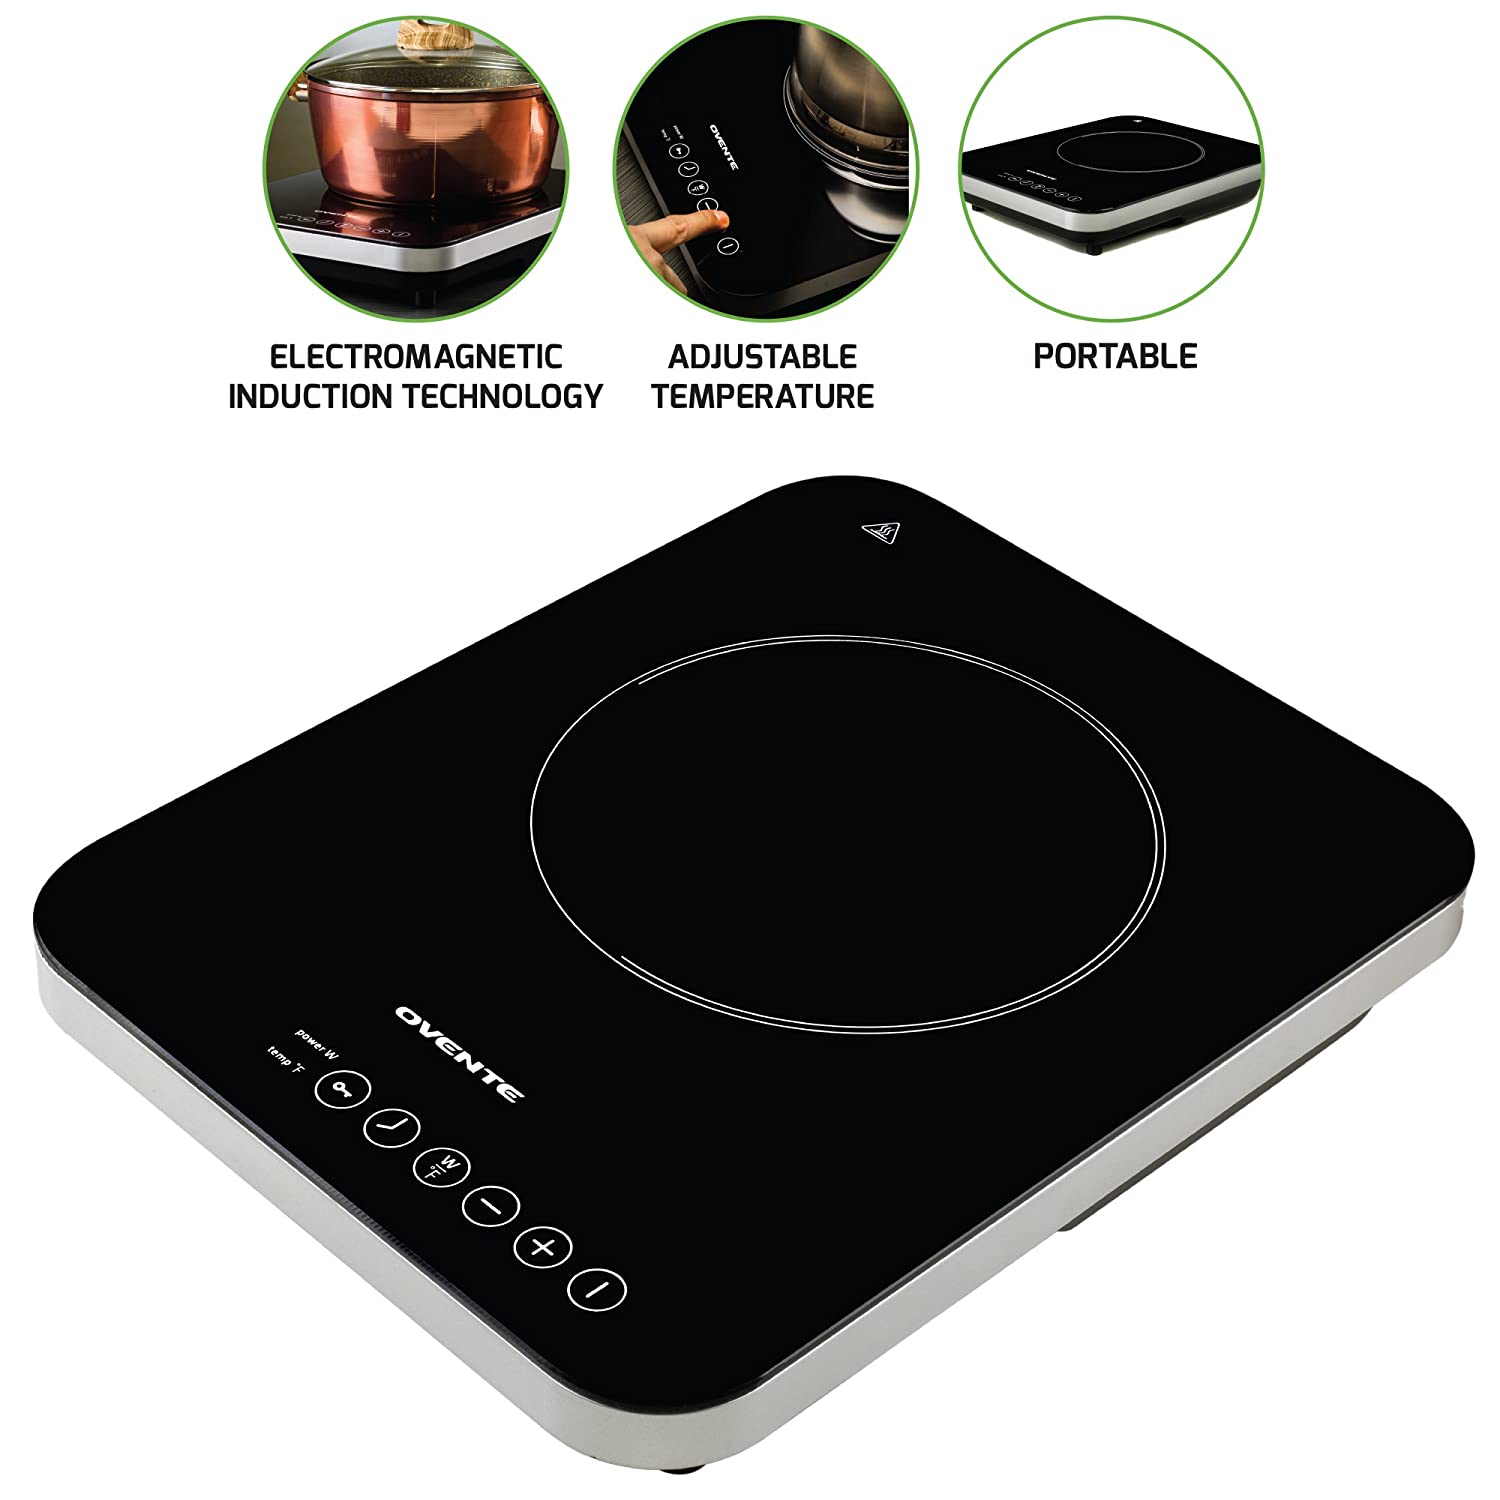 Ovente Induction Countertop Burner, Cool-Touch Ceramic Glass Cooktop with Temperature Control, Timer, 1800-Watts, Digital LED Touchscreen Display, Indoor/Outdoor Portable Single Hot Plate (BG61B)